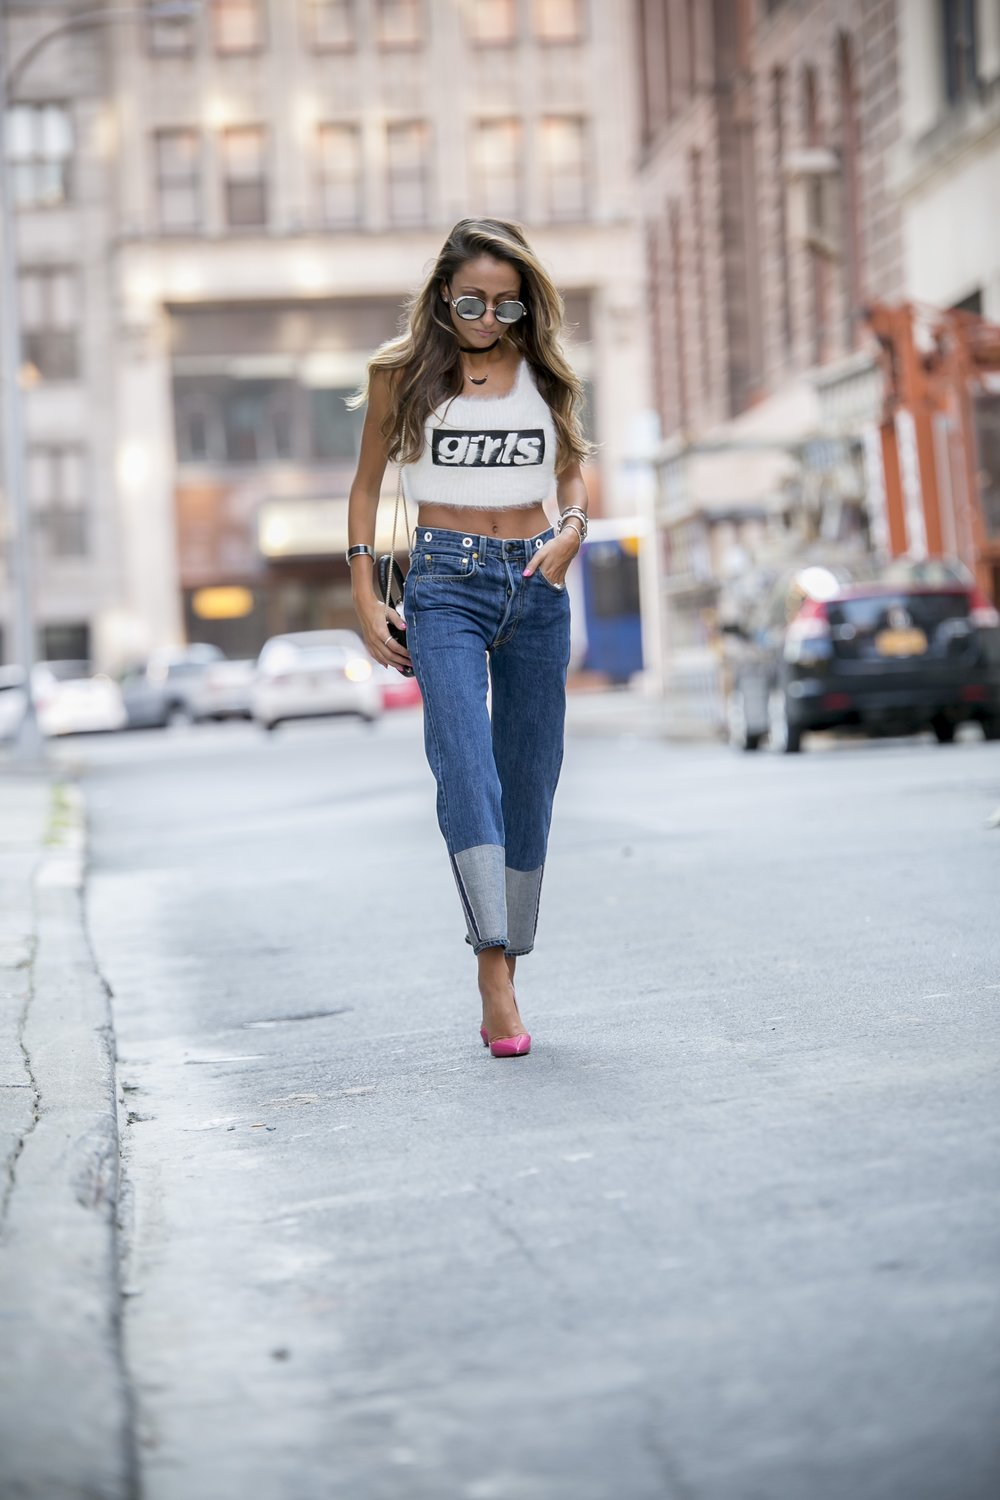 fashion blogger seen in Jimmy Choo sunglasses, Alexander Wang knit girls tank, Rag and Bone jeans, and Christian Louboutin pumps